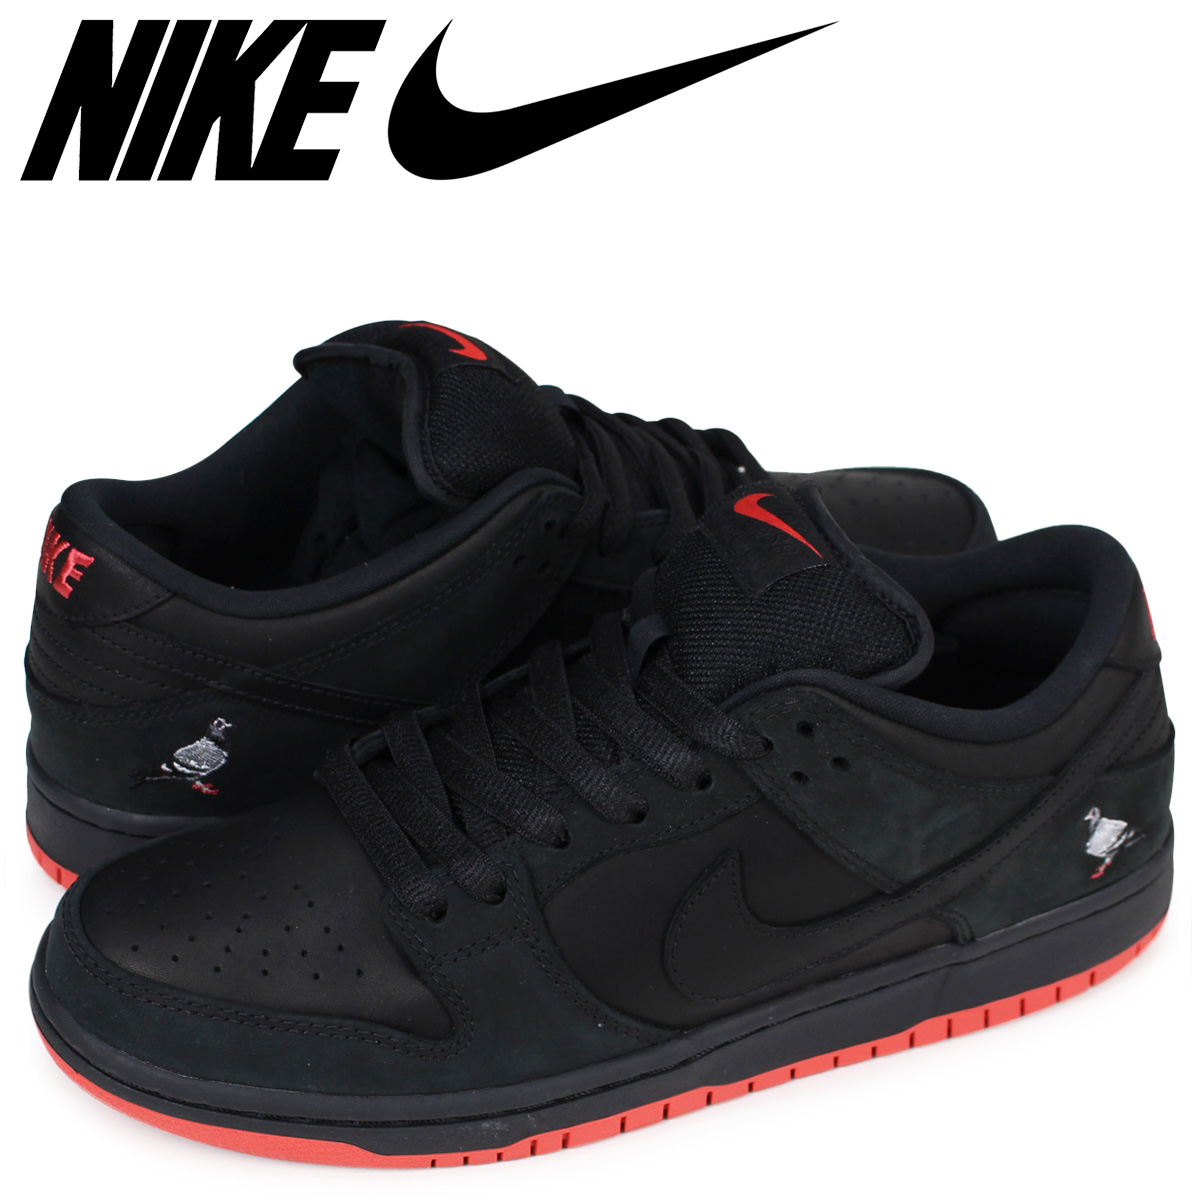 newest be995 3a0a5 NIKE Nike SB dunk low sneakers ZOOM DUNK LOW TRD QS PIGEON 883,232-008  men's black black